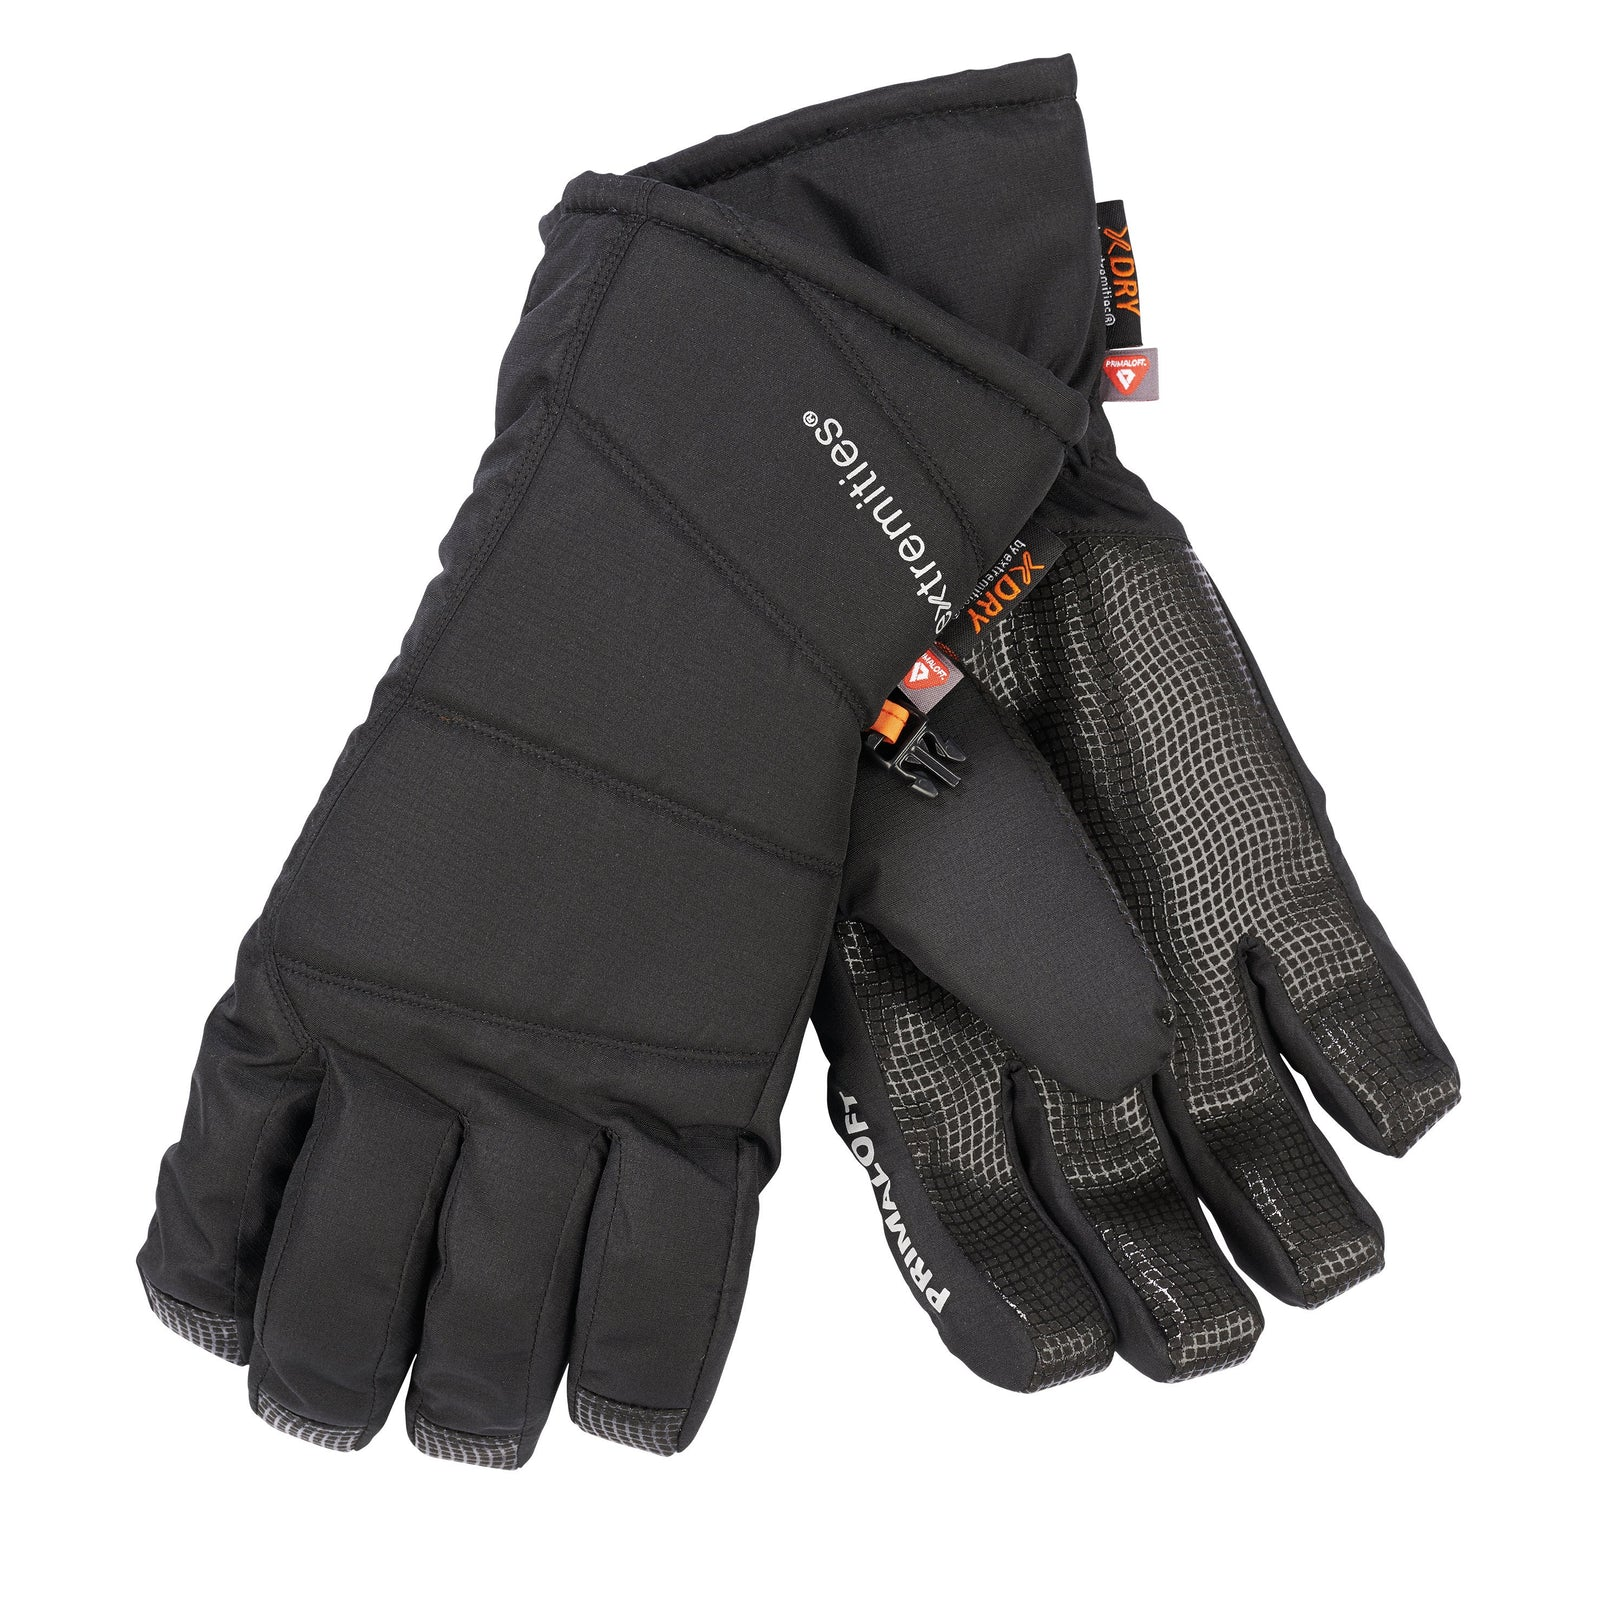 Extremities Trail Waterproof Glove - Trailblazer Outdoors, Pickering